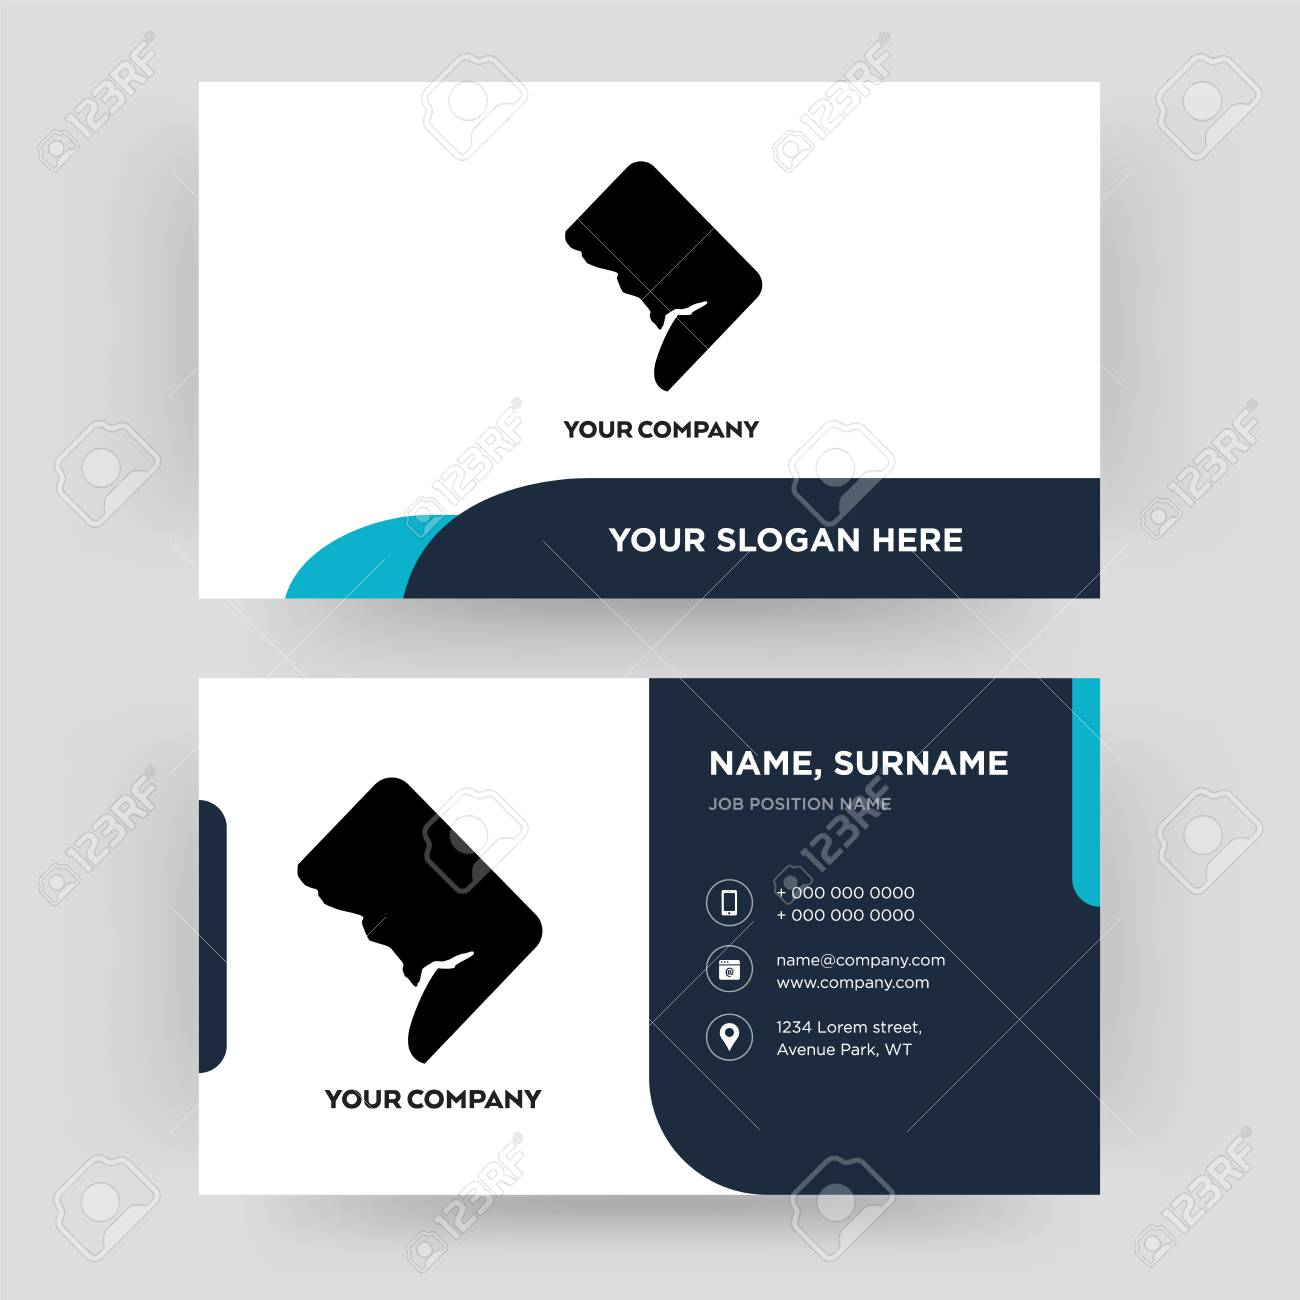 102278517 dc business card design template visiting for your company modern creative and clean identity card v